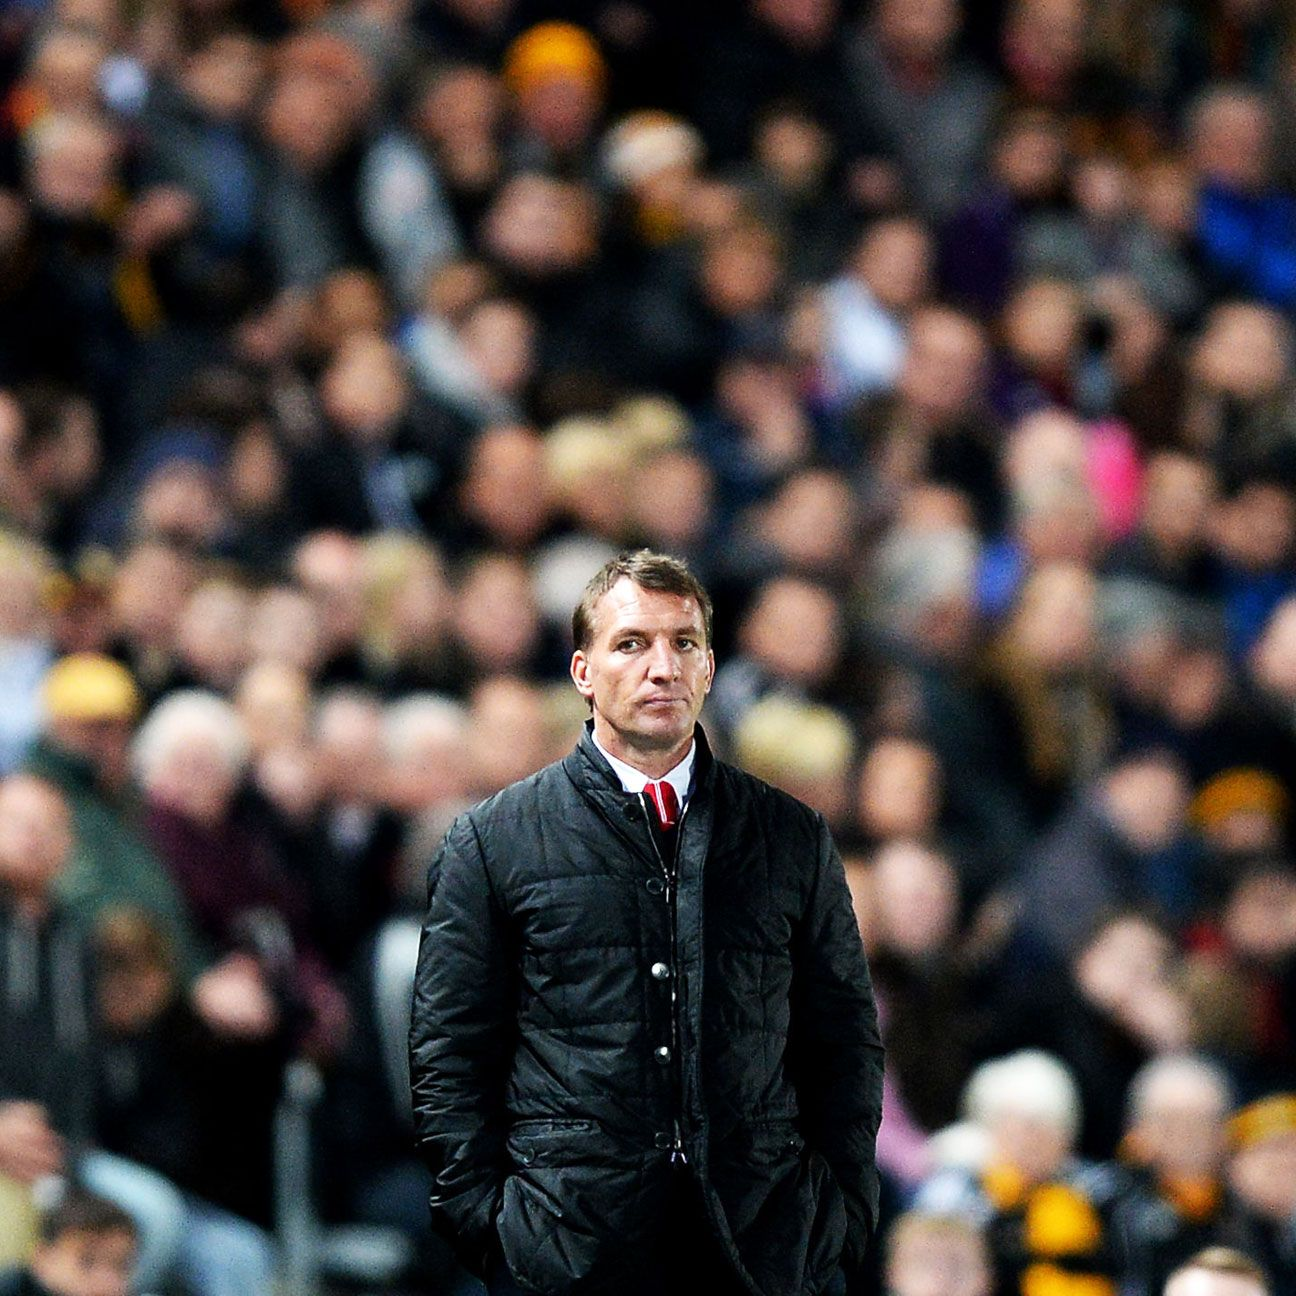 Liverpool boss Brendan Rodgers will be looking to secure a second straight top-five finish.